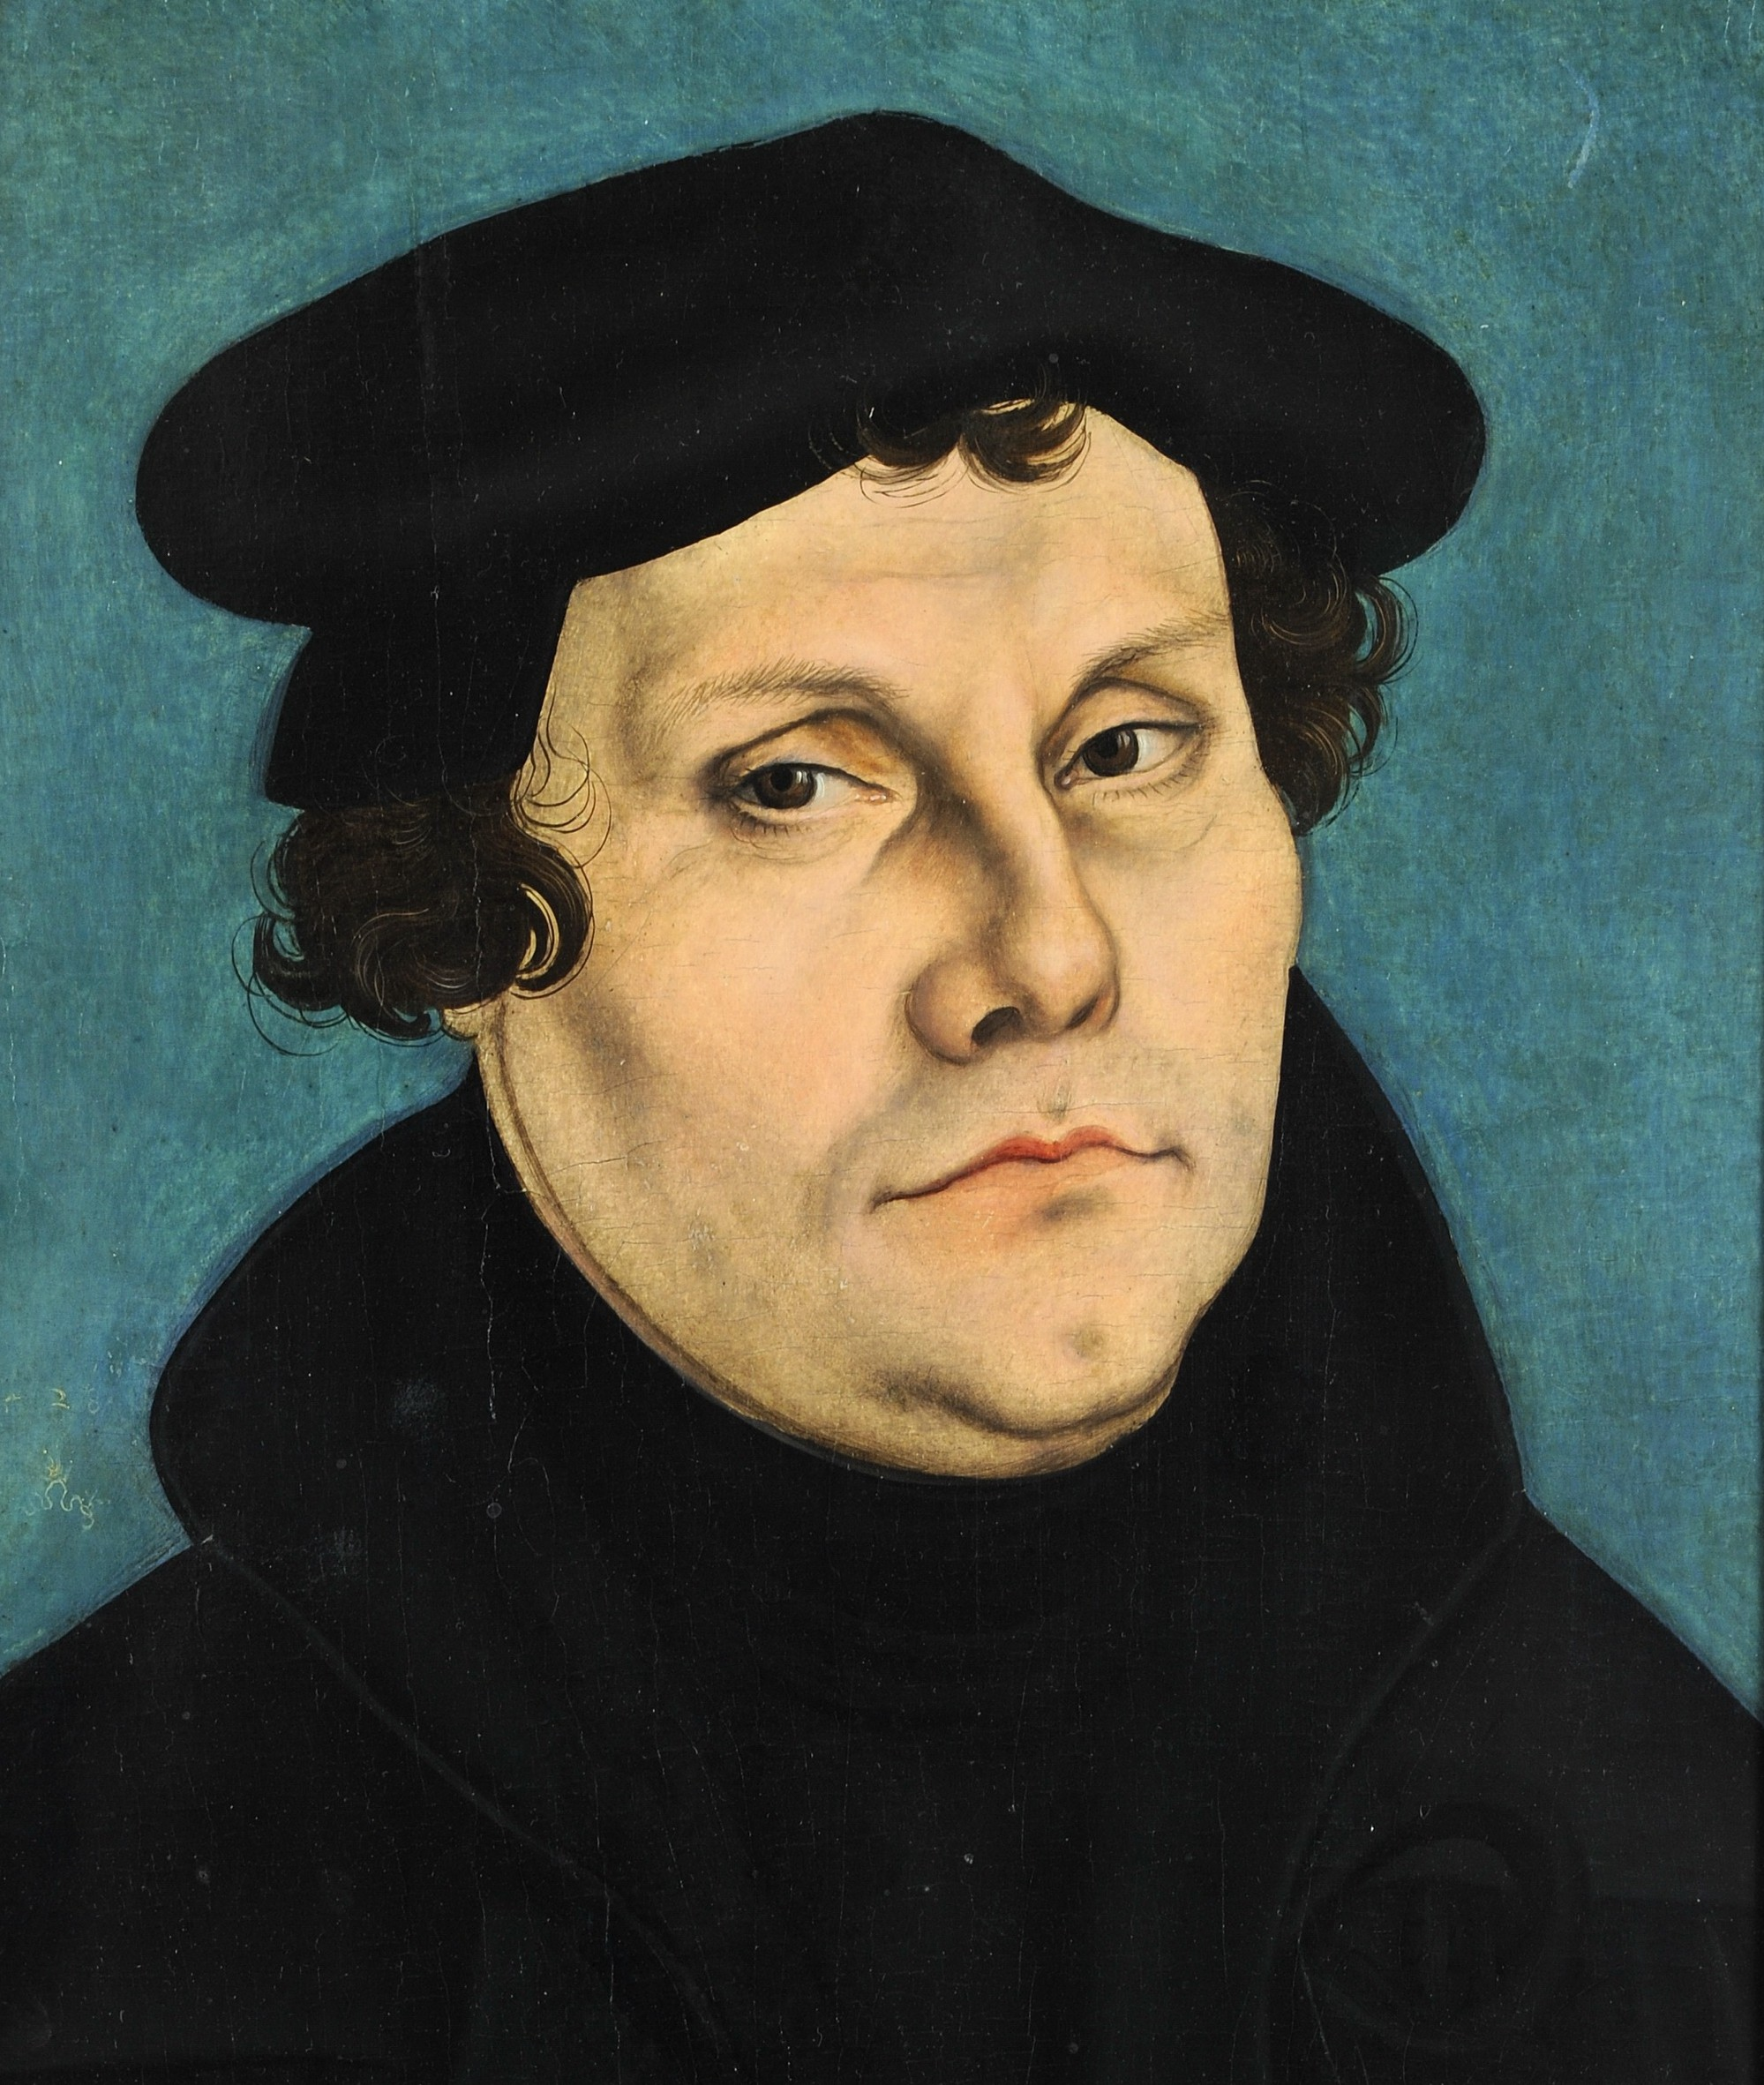 https://upload.wikimedia.org/wikipedia/commons/a/a1/Lucas_Cranach_d.%C3%84._-_Martin_Luther,_1528_(Veste_Coburg)_(cropped).jpg